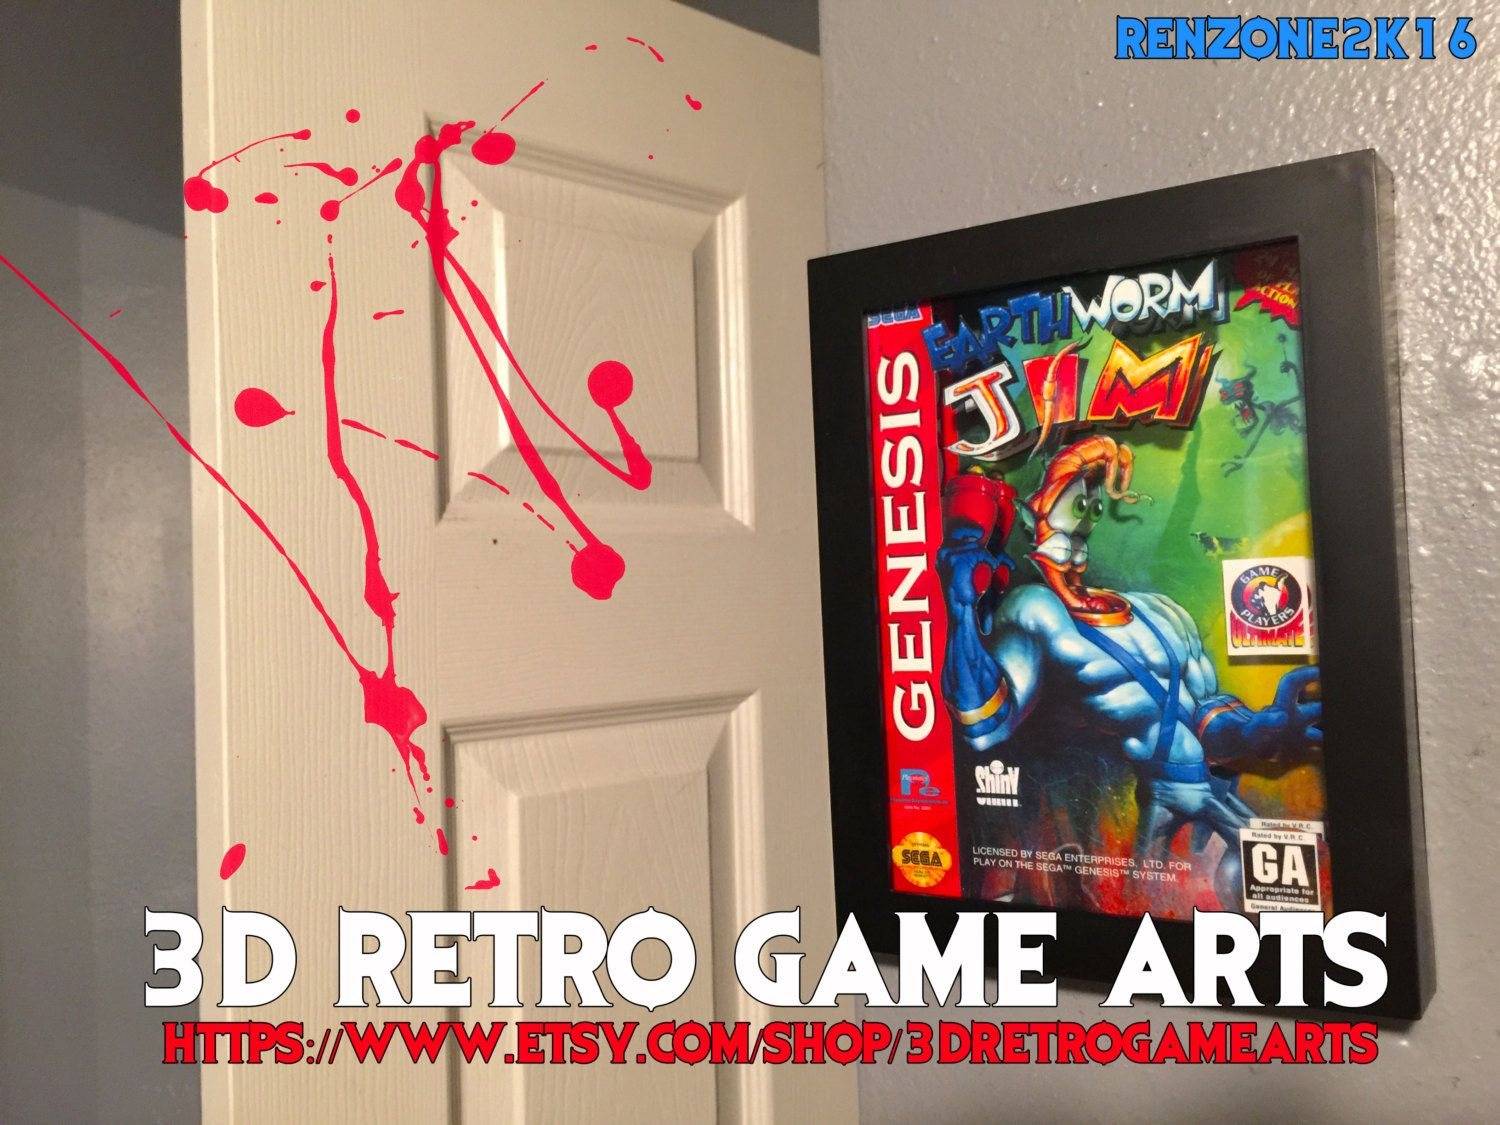 Earthworm Jim Sega Genesis Nintendo NES - Retro 3D Game Arts - Series 8 Collection - Retro Art 4 Playstation xbox one ps4 custom